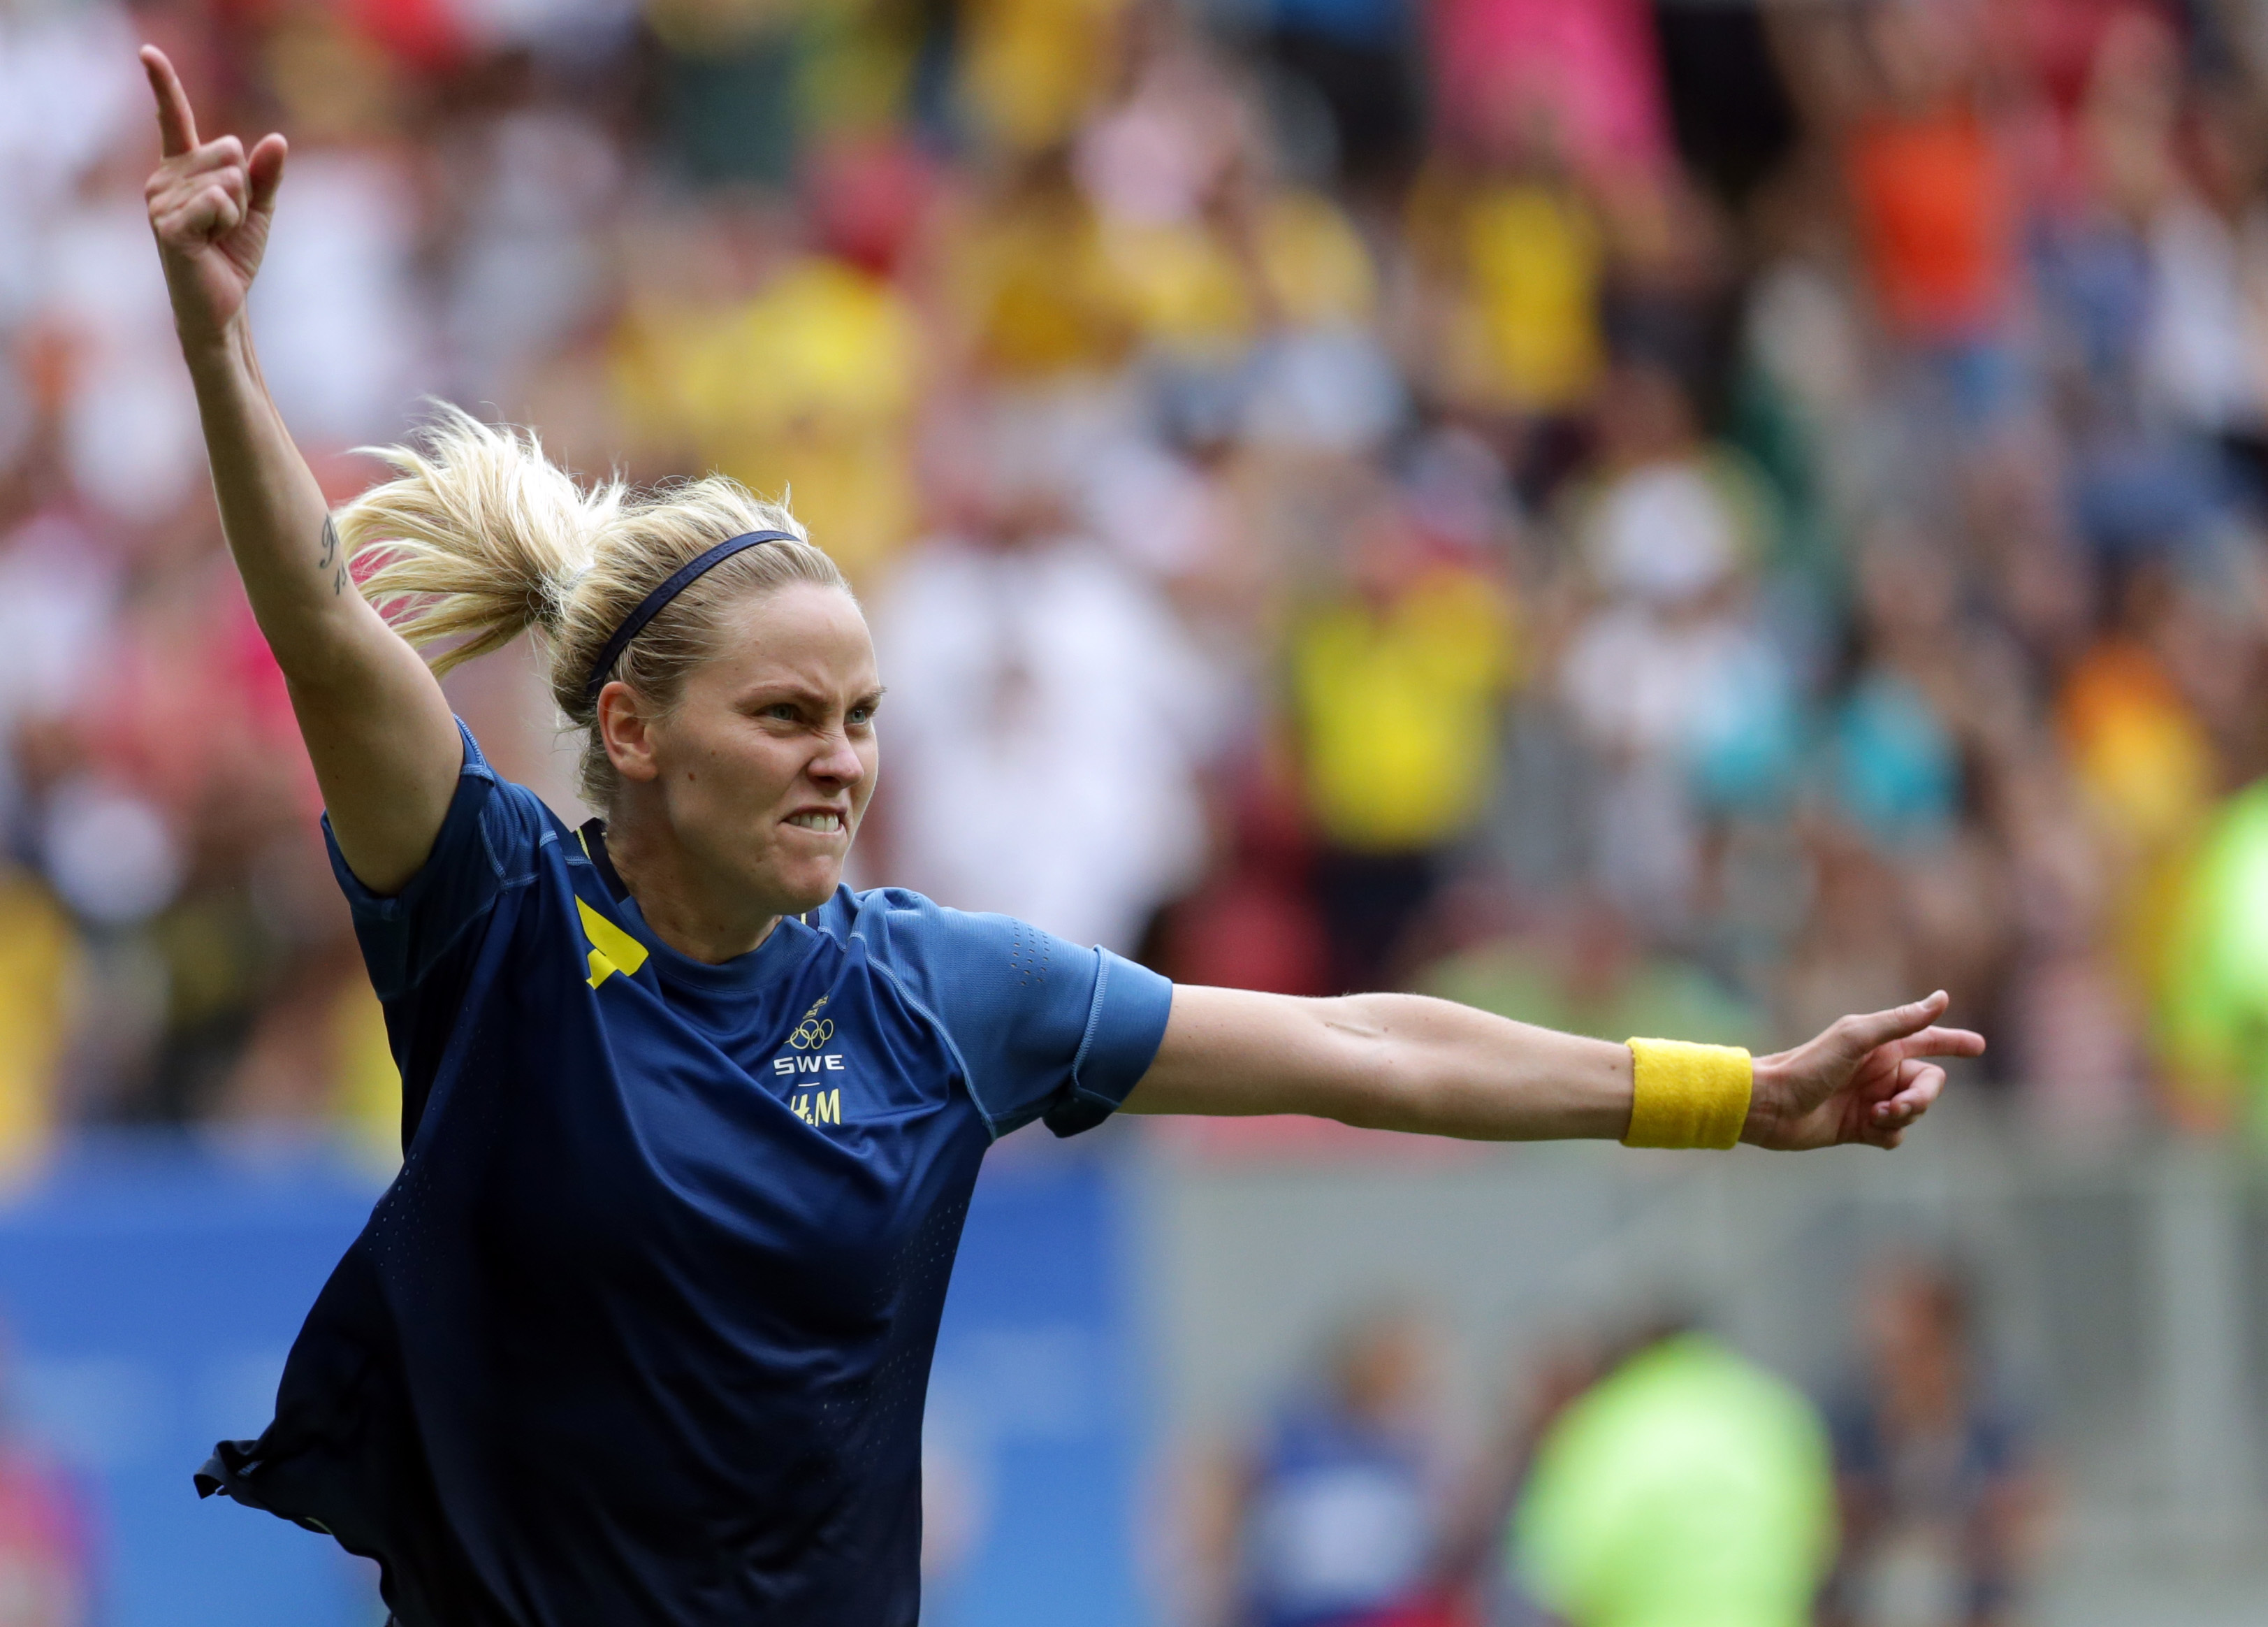 Sweden's Lisa Dahlkvist celebrates after scoring in the penalty kicks during a quarter-final match of the women's Olympic football tournament between the United States and Sweden in Brasilia Friday Aug. 12, 2016. The United States was eliminated by Sweden